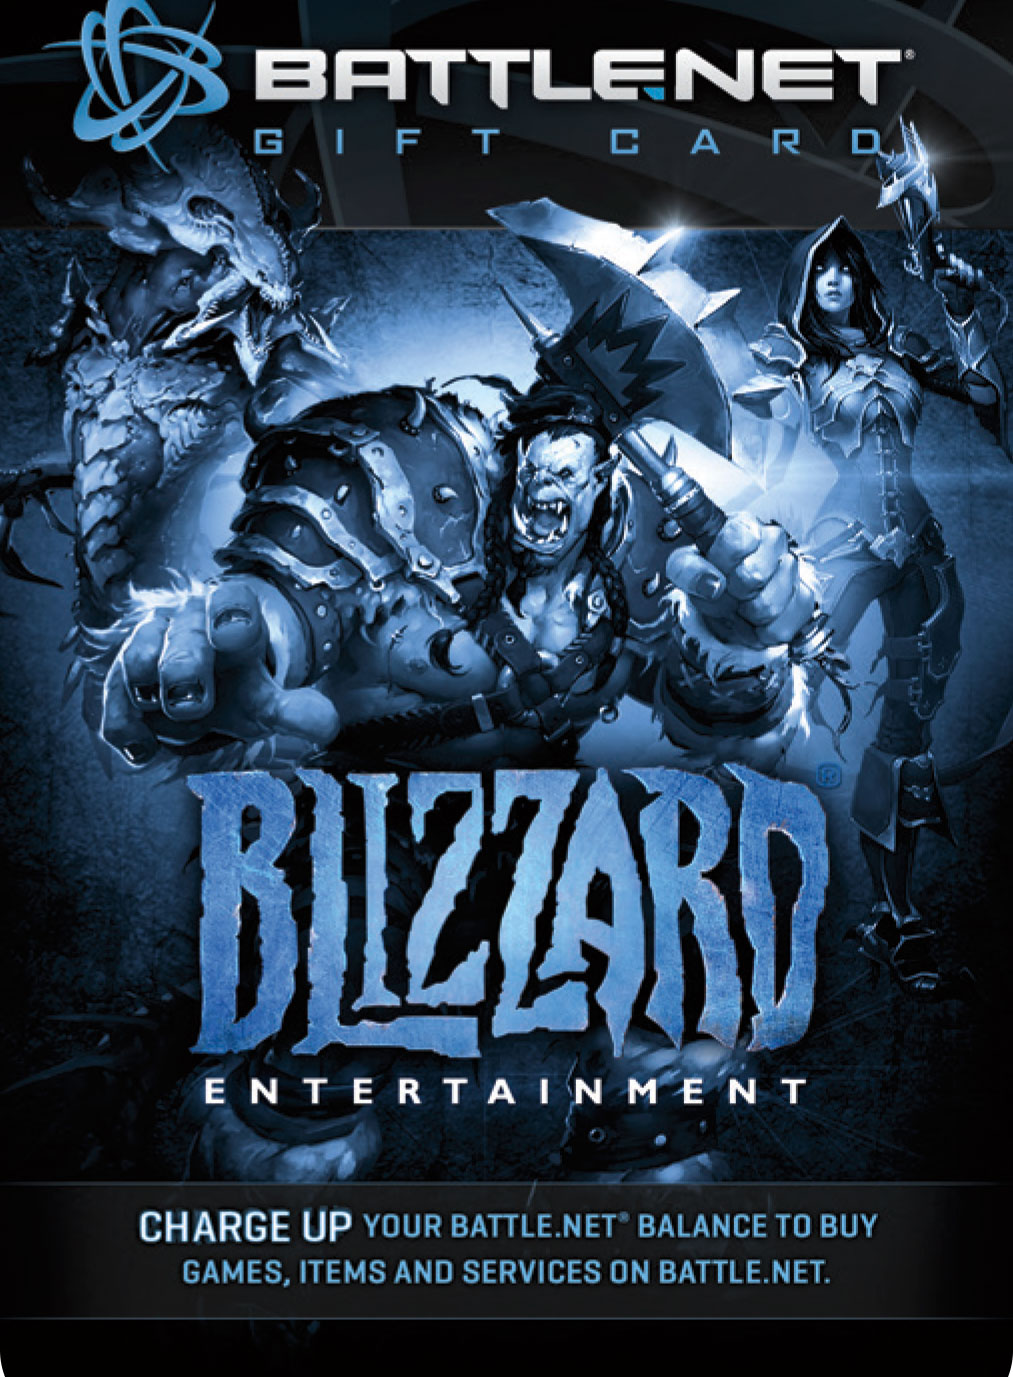 : $20 Battle.net Store Gift Card Balance - Blizzard Entertainment [Digital Code] [Online Game Code]